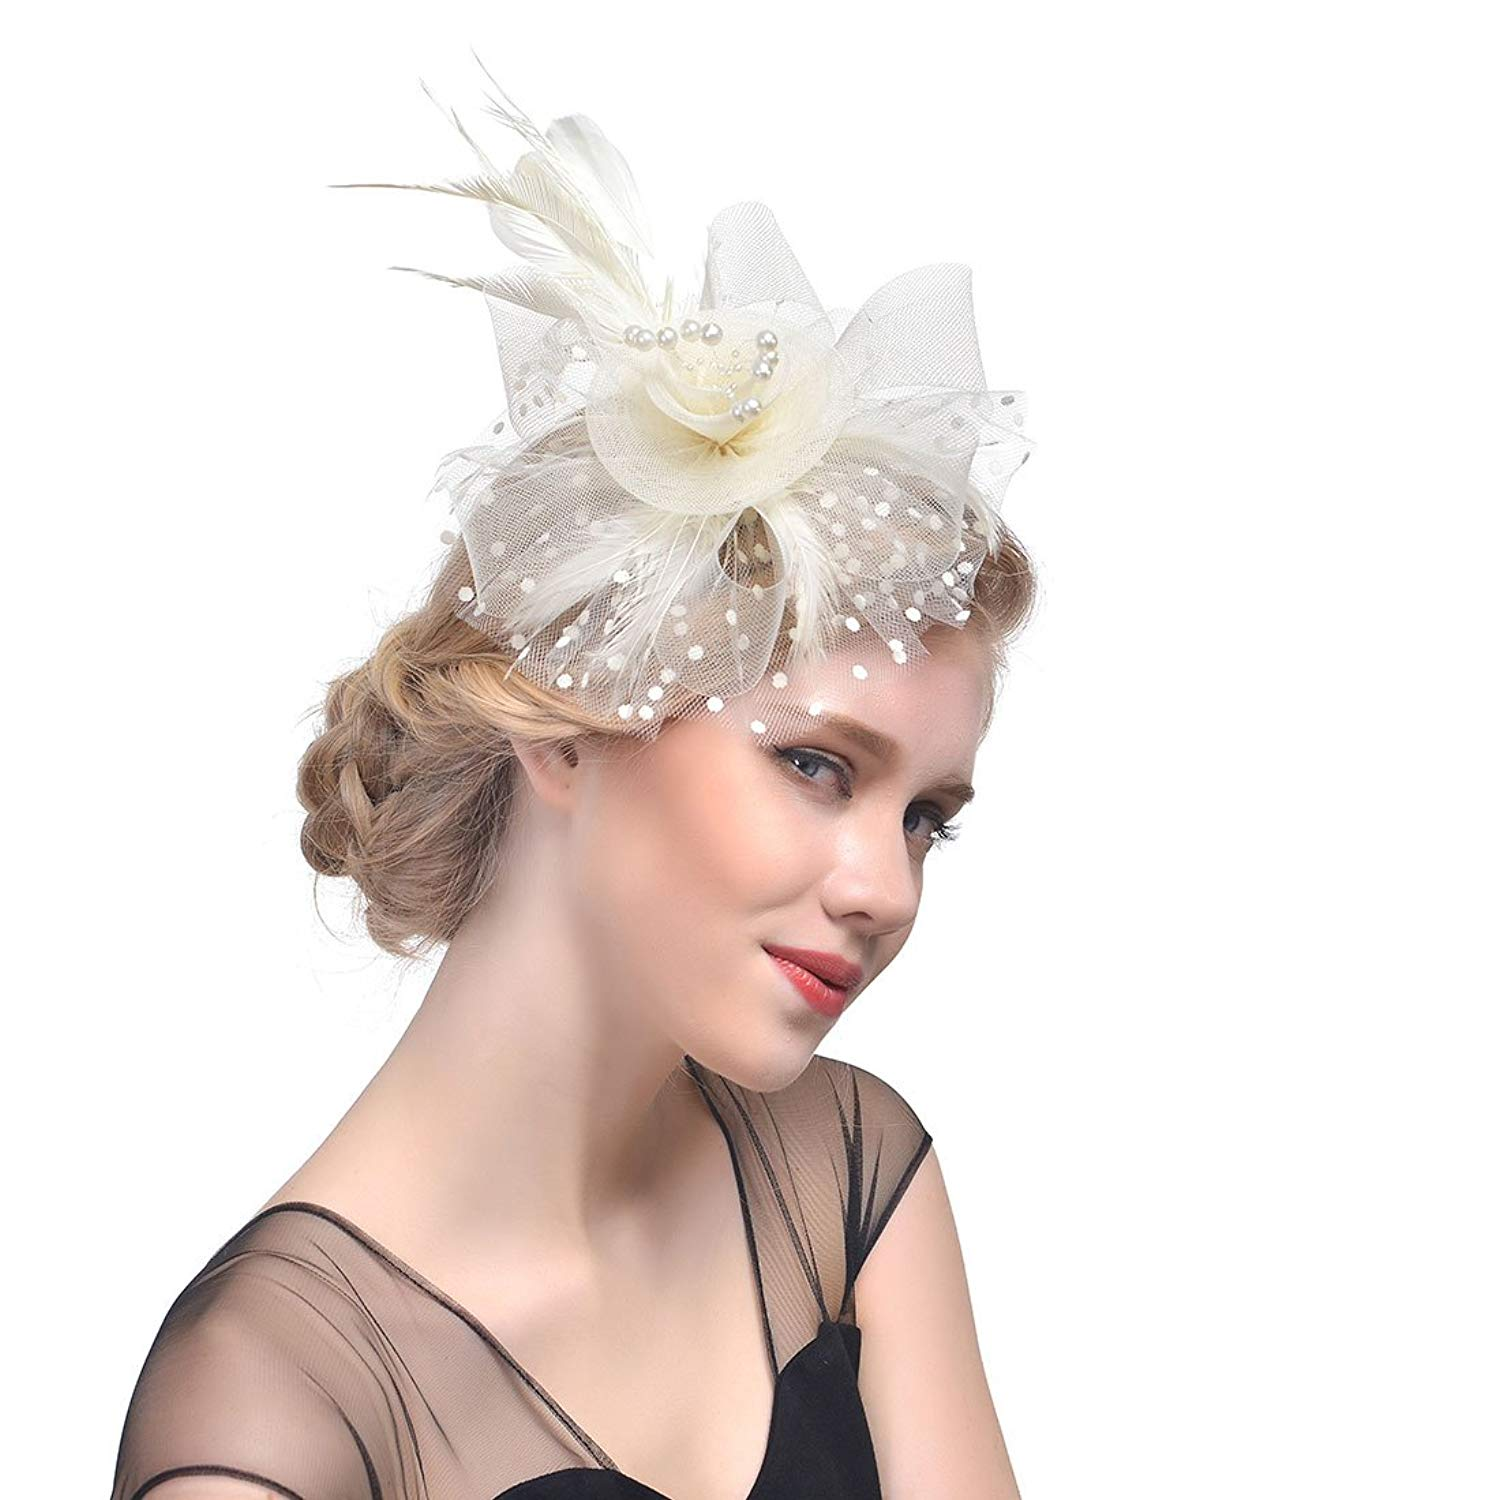 a2057b8fe924 Get Quotations · Lanzom Women Fascinators Hat Flower Feathers Hair Clip  Party Kentucky Derby Wedding Cocktail Headwear